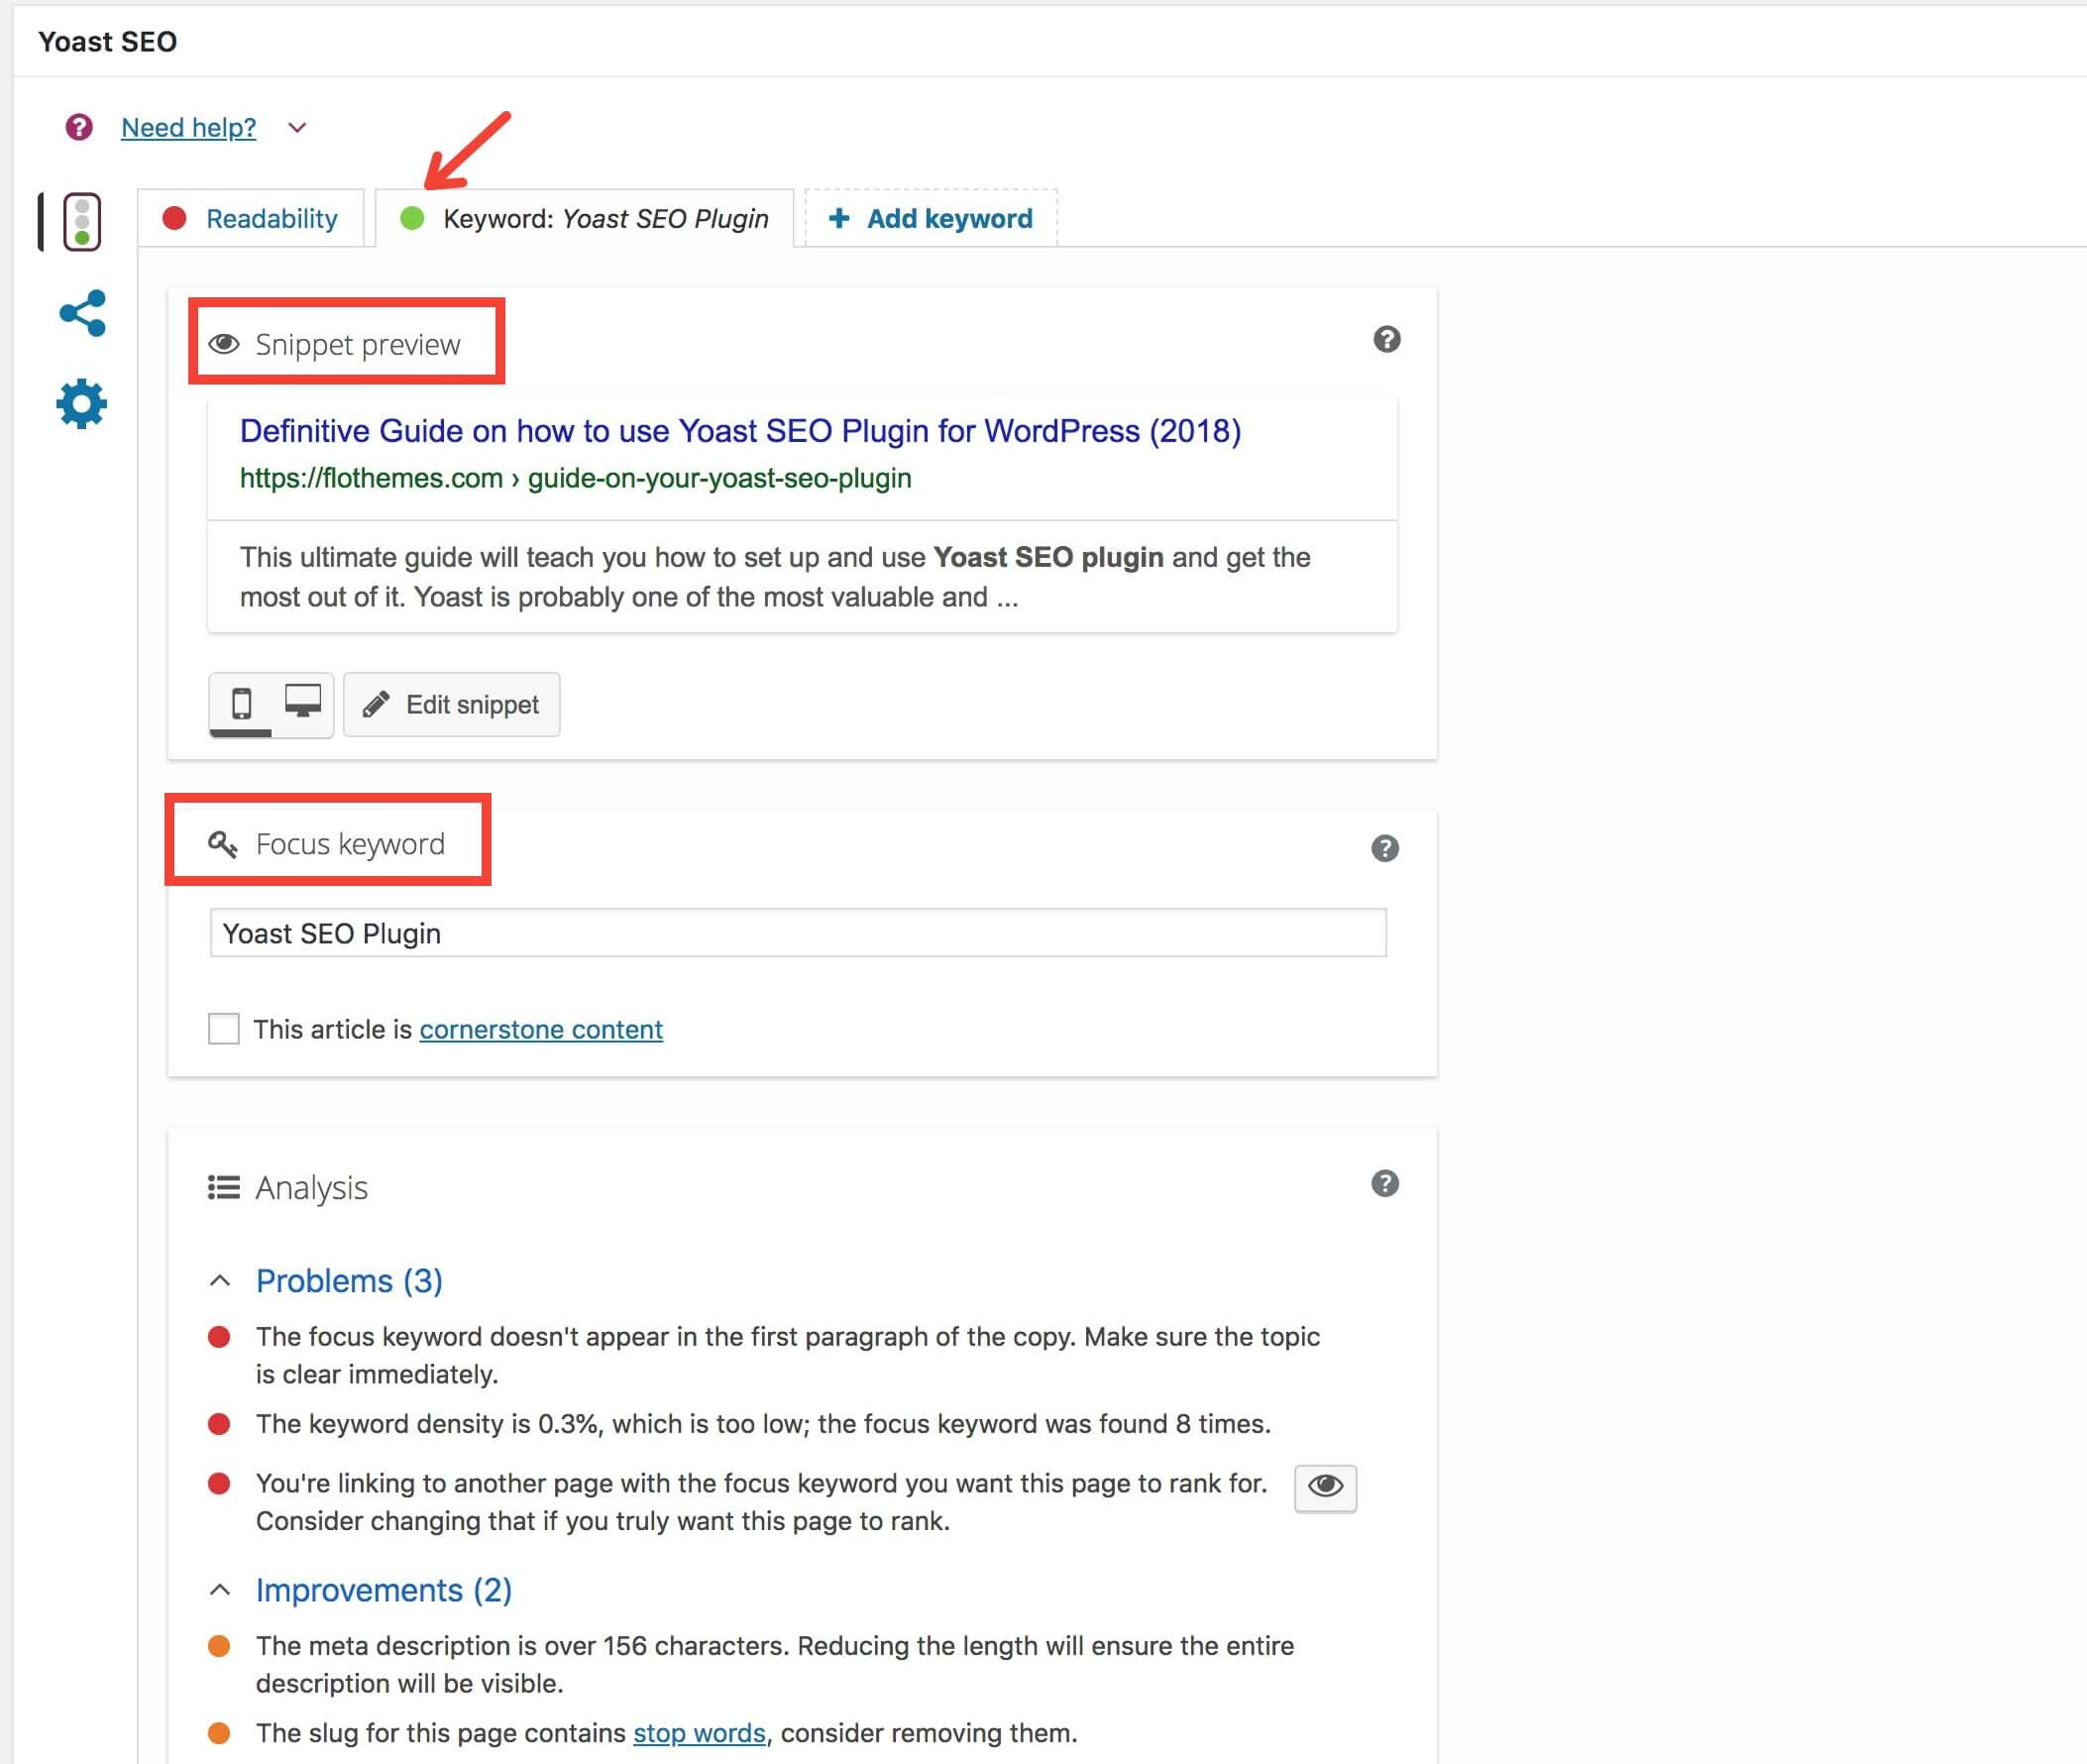 Definitive Guide On How To Use Yoast SEO Plugin For